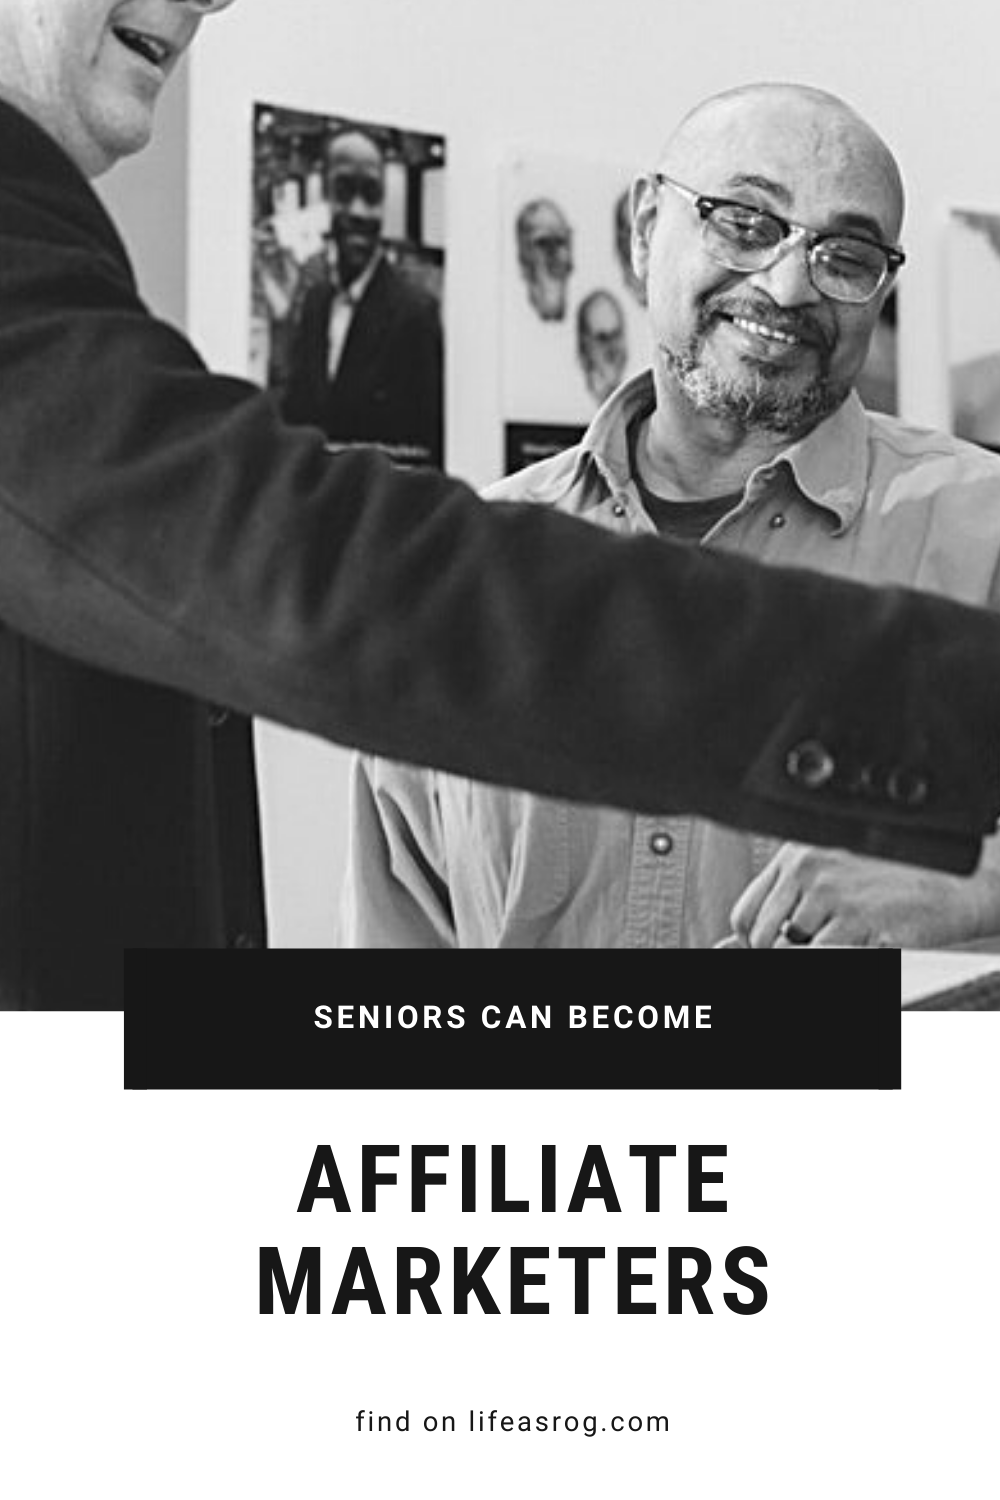 Seniors Can Become Affiliate Marketers